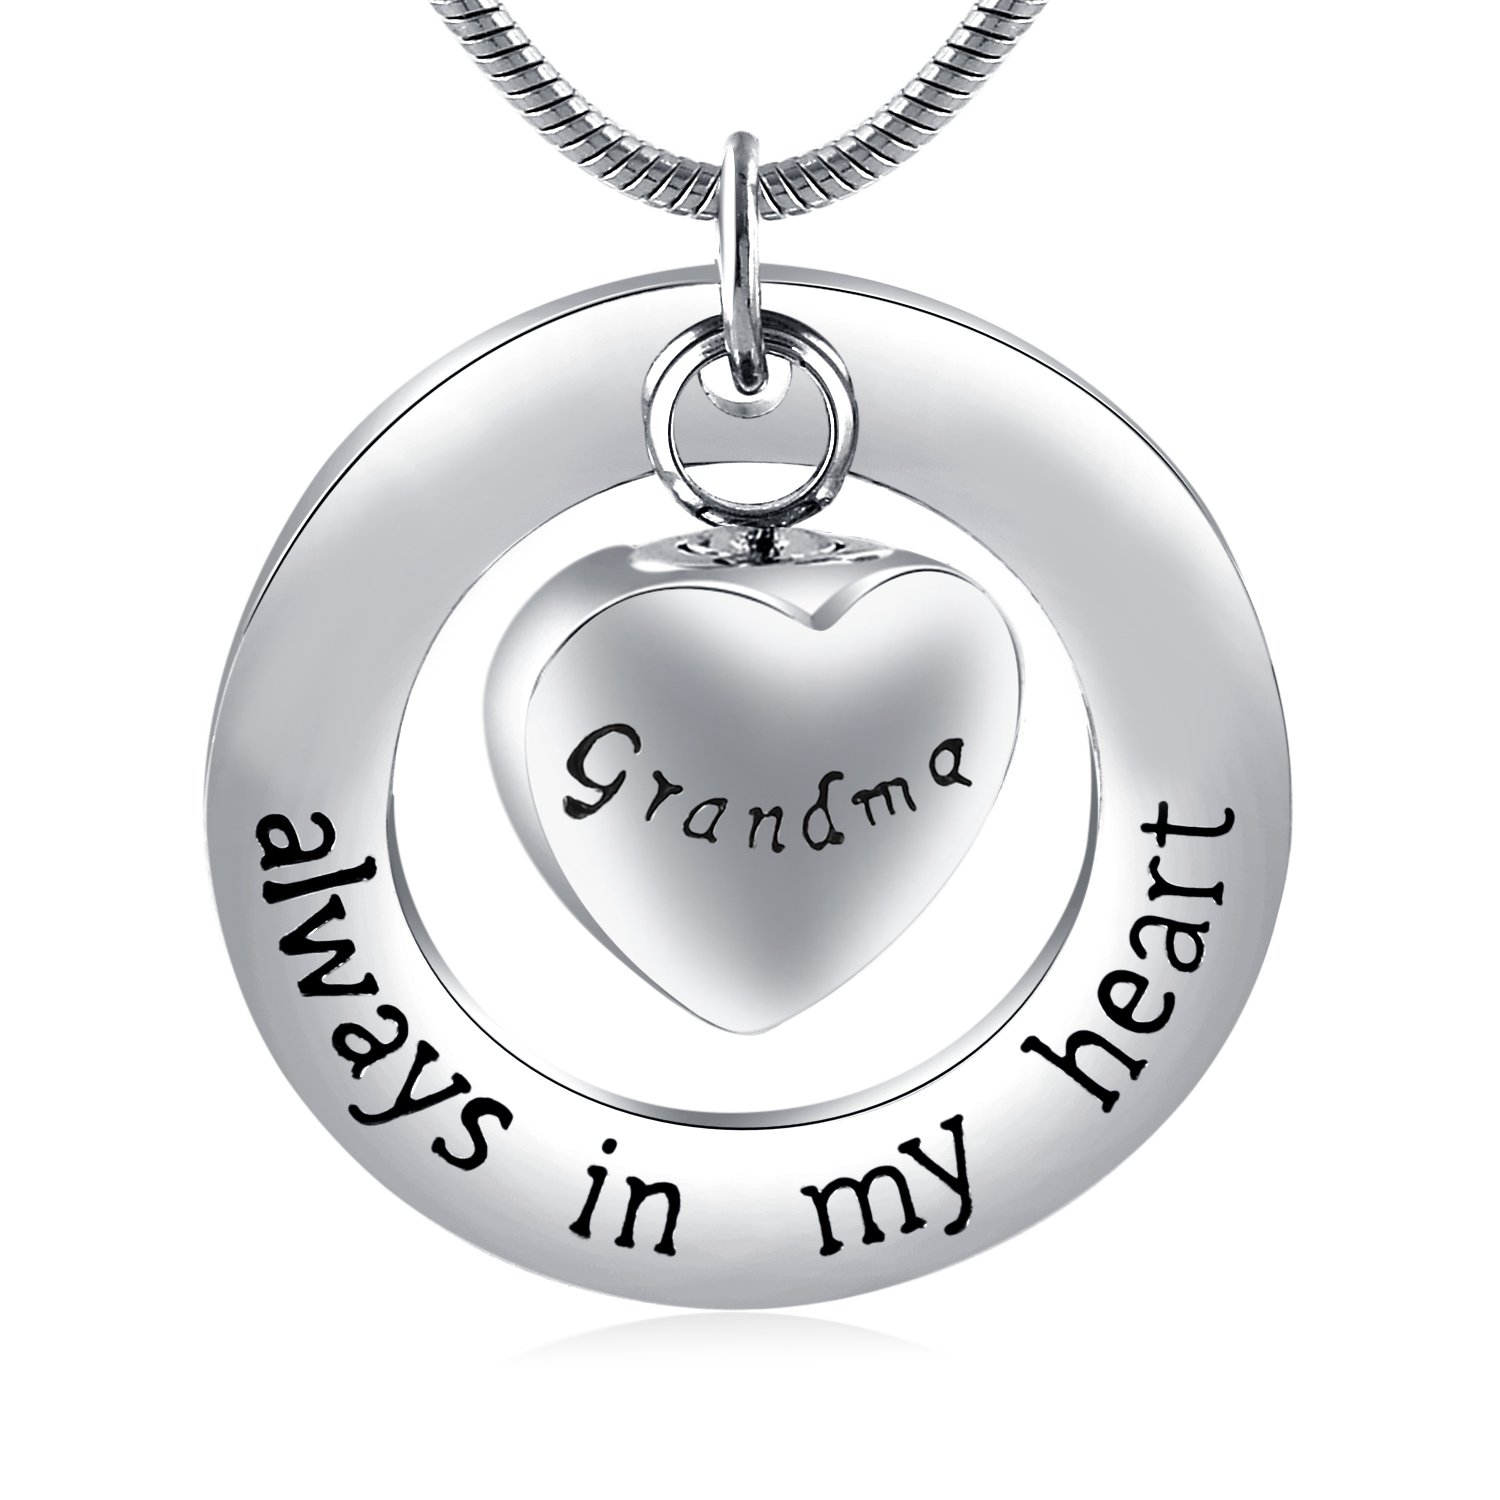 k res urn by jewelry cremation neck of in initial memorial amist necklace crystal a heaven with pendant my birthstone itm may heart keepsake piece